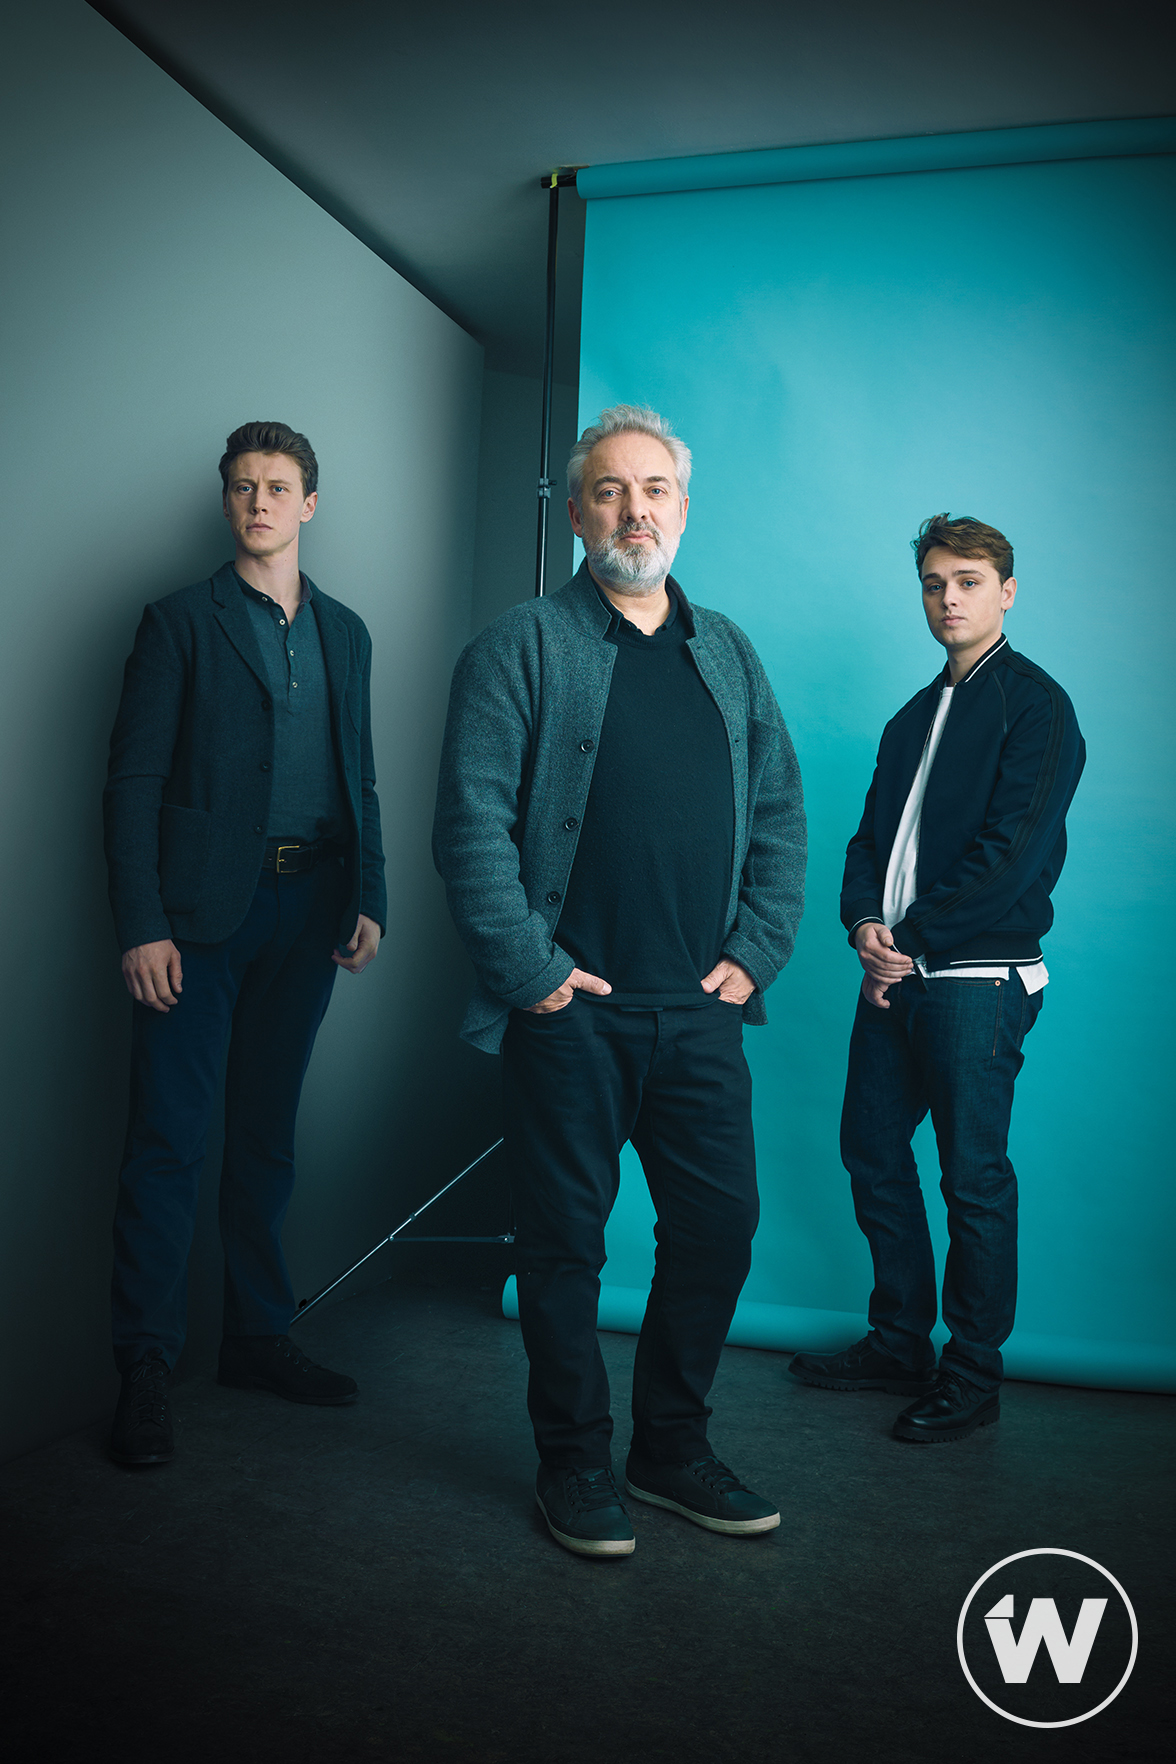 George MacKay, Dean-Charles Chapman and Sam Mendes - The Wrap Photoshoot - 2019